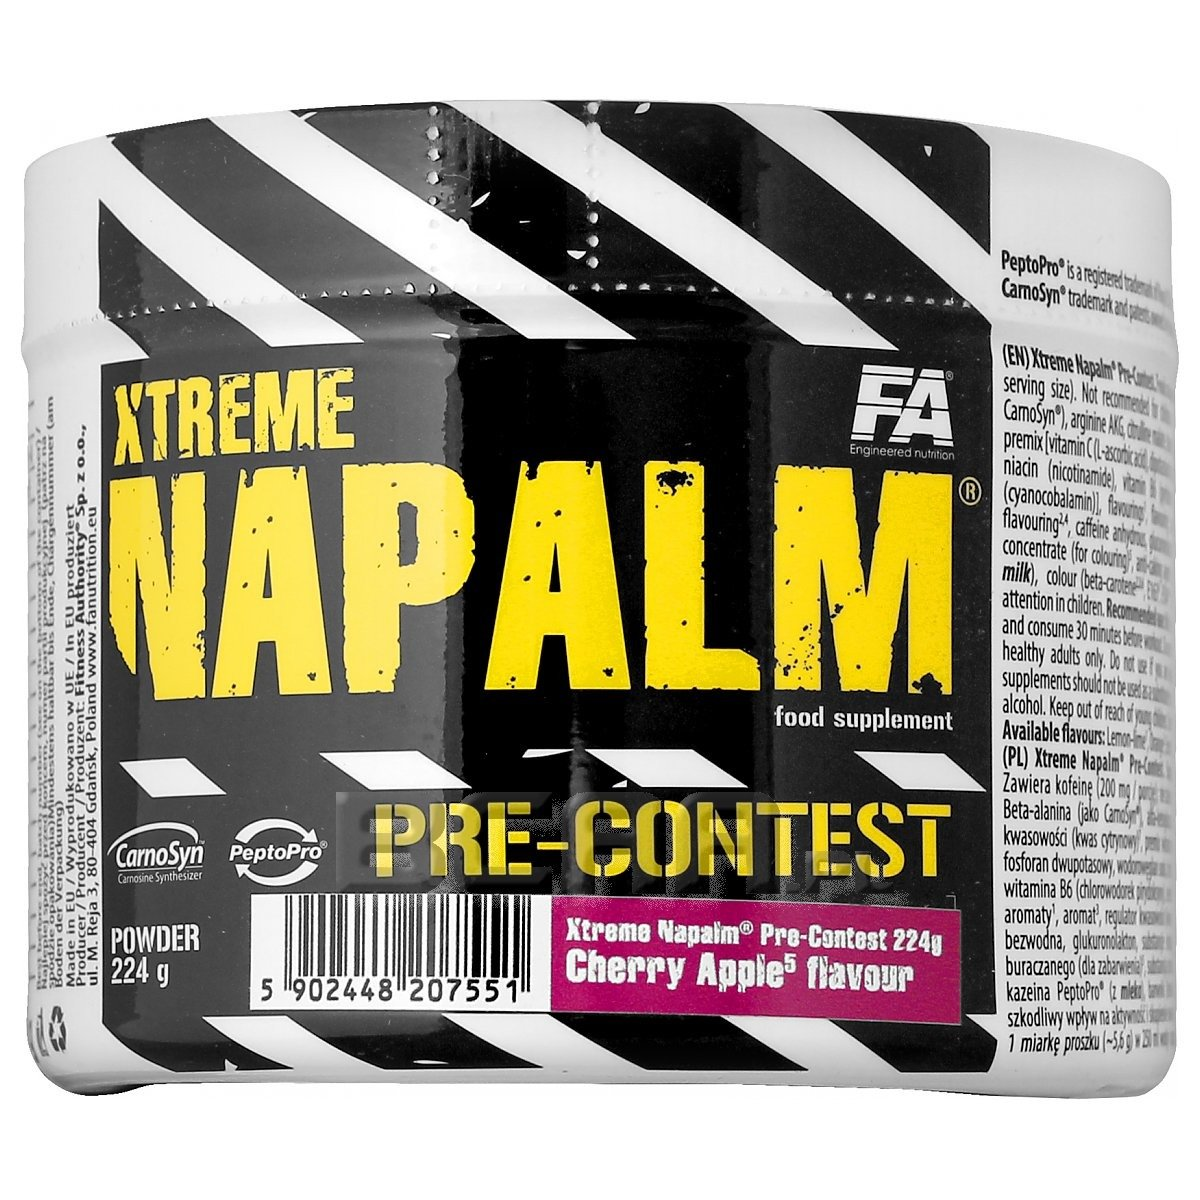 ae5e4100f655 Xtreme Napalm Pre-Contest Fitness Authority 224g  promocja  • Sklep ...